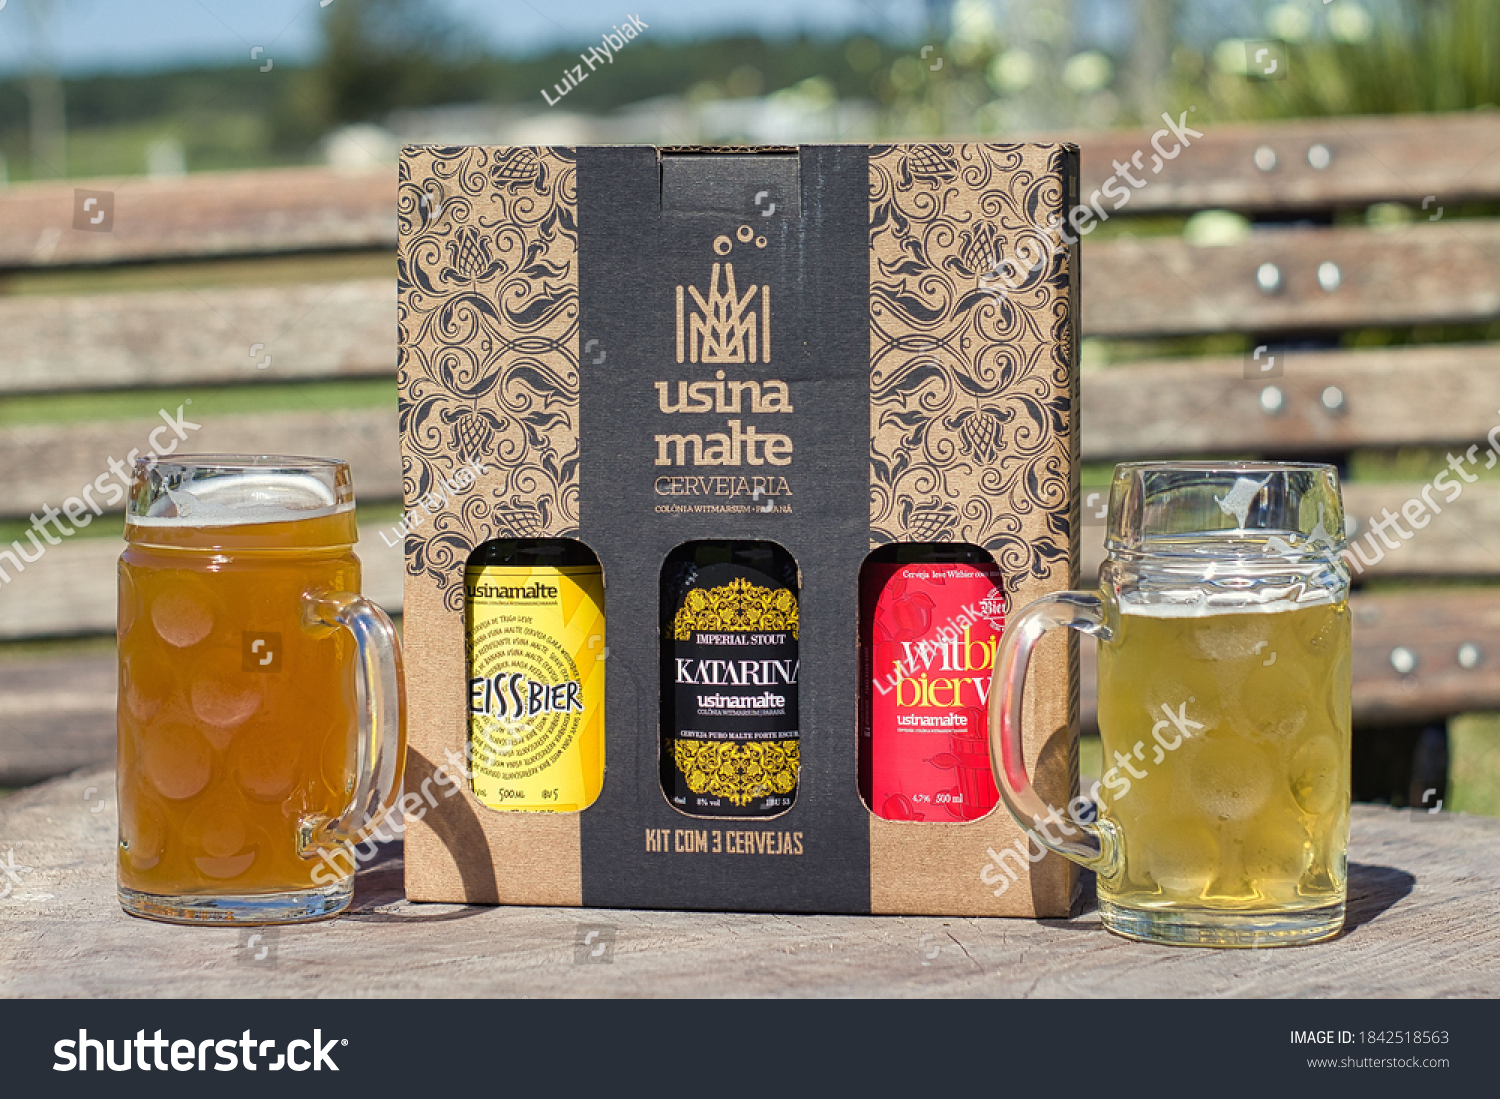 "Palmeira, Paraná, Brazil - August 29, 2020. ""Usina Malte"" Brewery located at ""Colônia Witmarsum"". A box containing three different beers, two partially filled beer glasses. Wood bench in background."